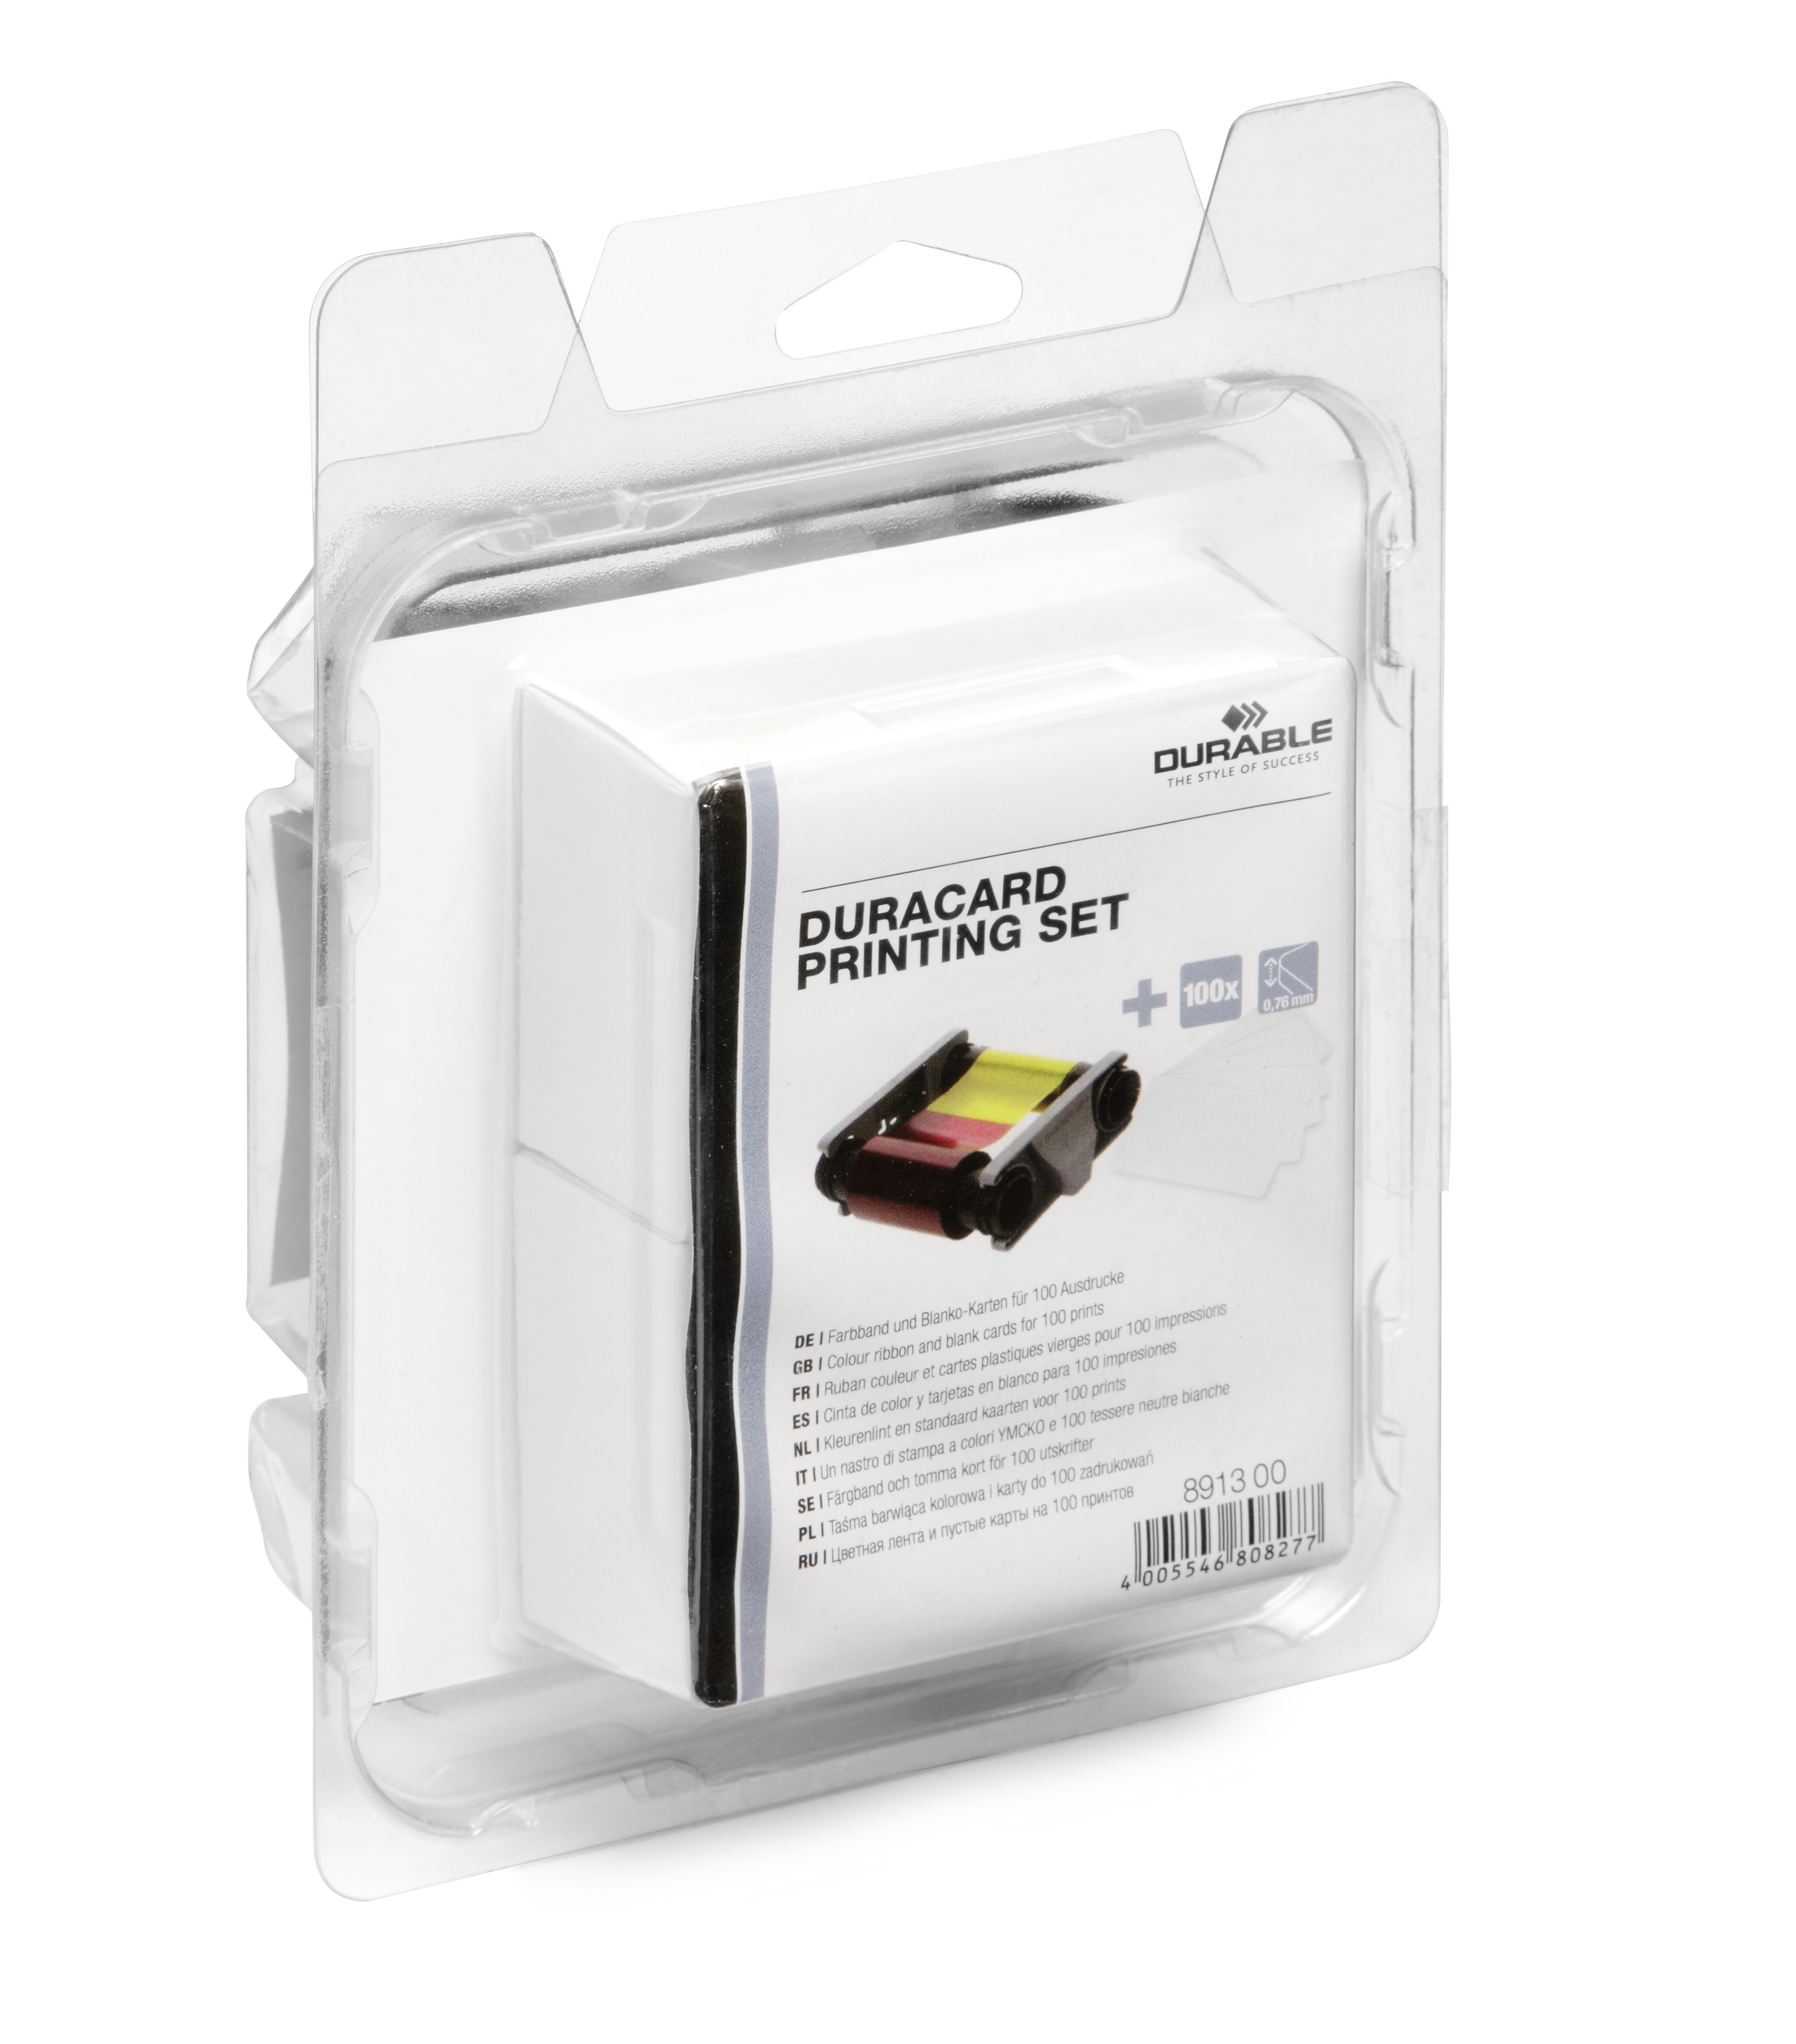 DURABLE DURACARD Printing set (Farbband+Karten) 1 SET Z891399